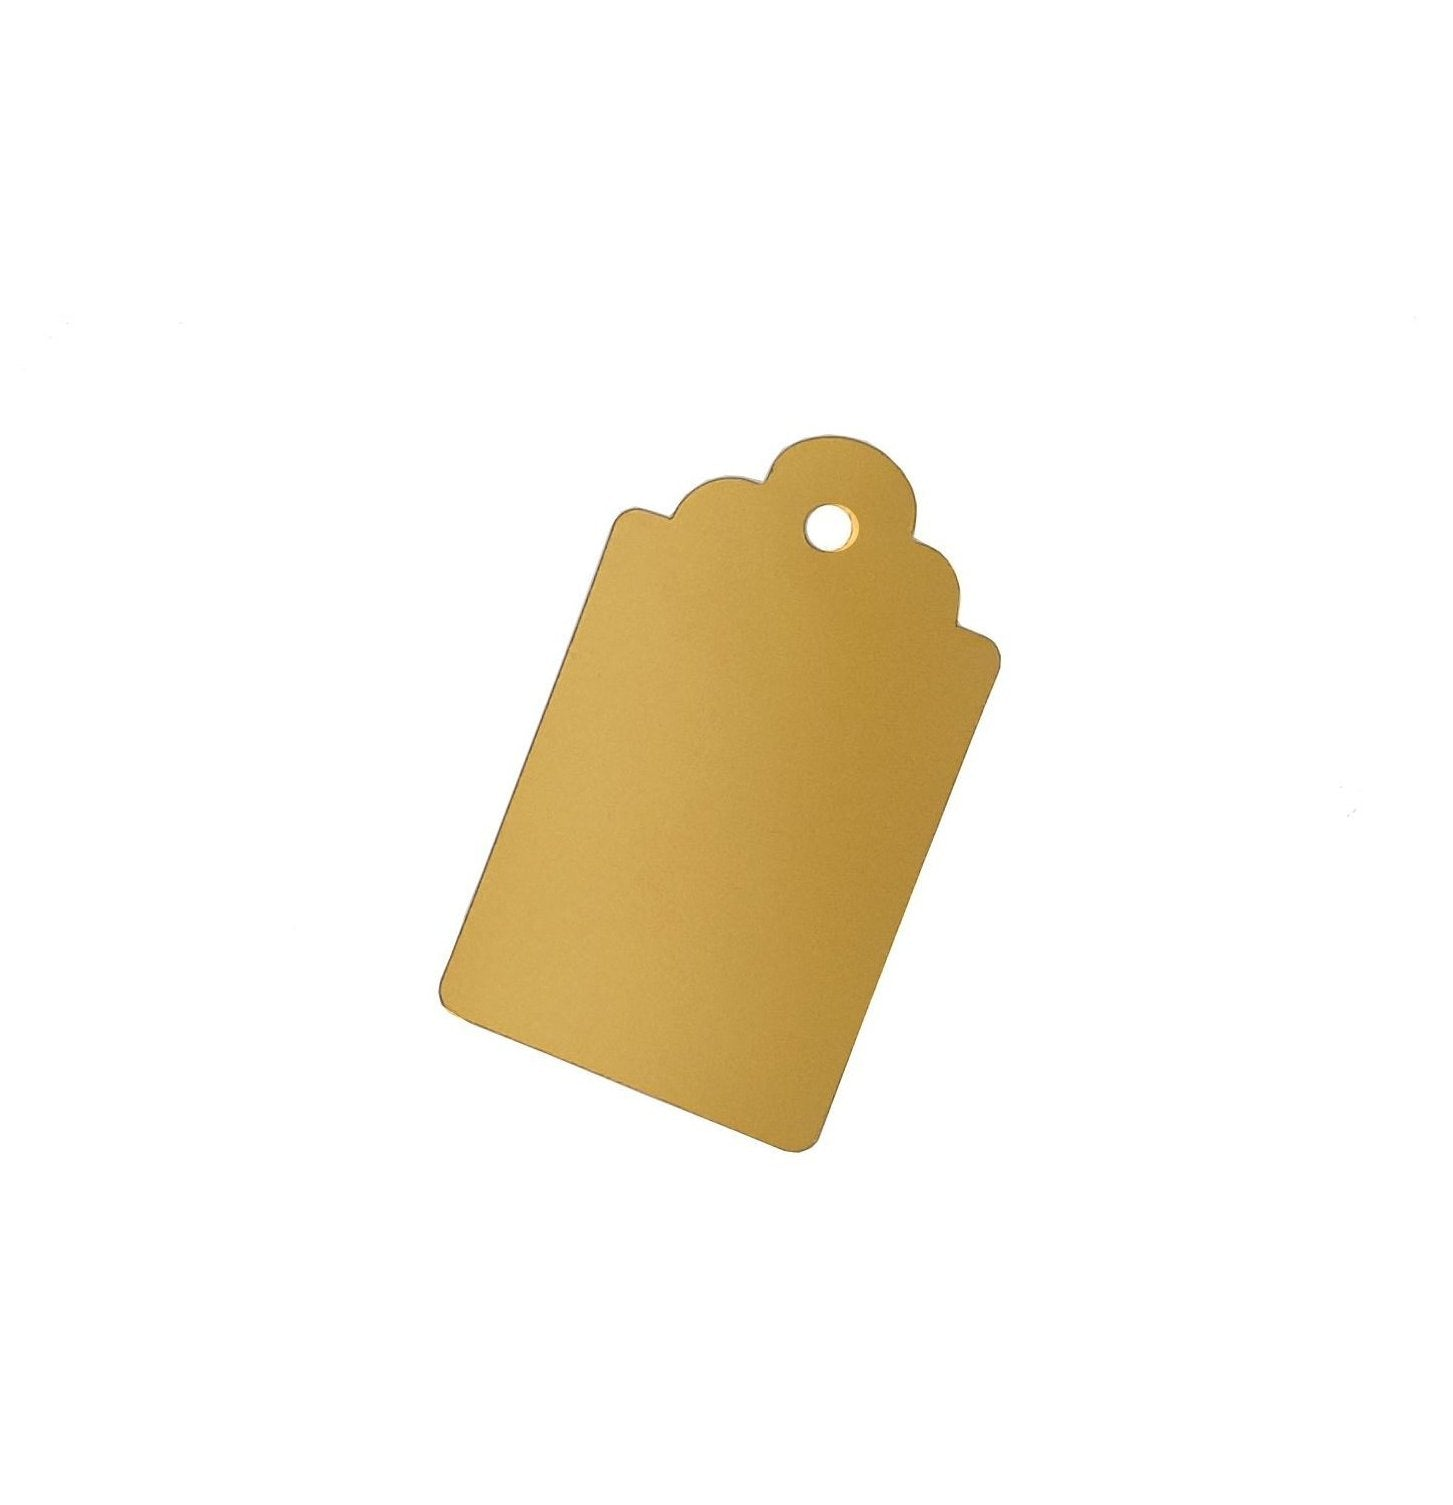 Metallic Gold Gift Tags-Single-sided Gold Gift Tags